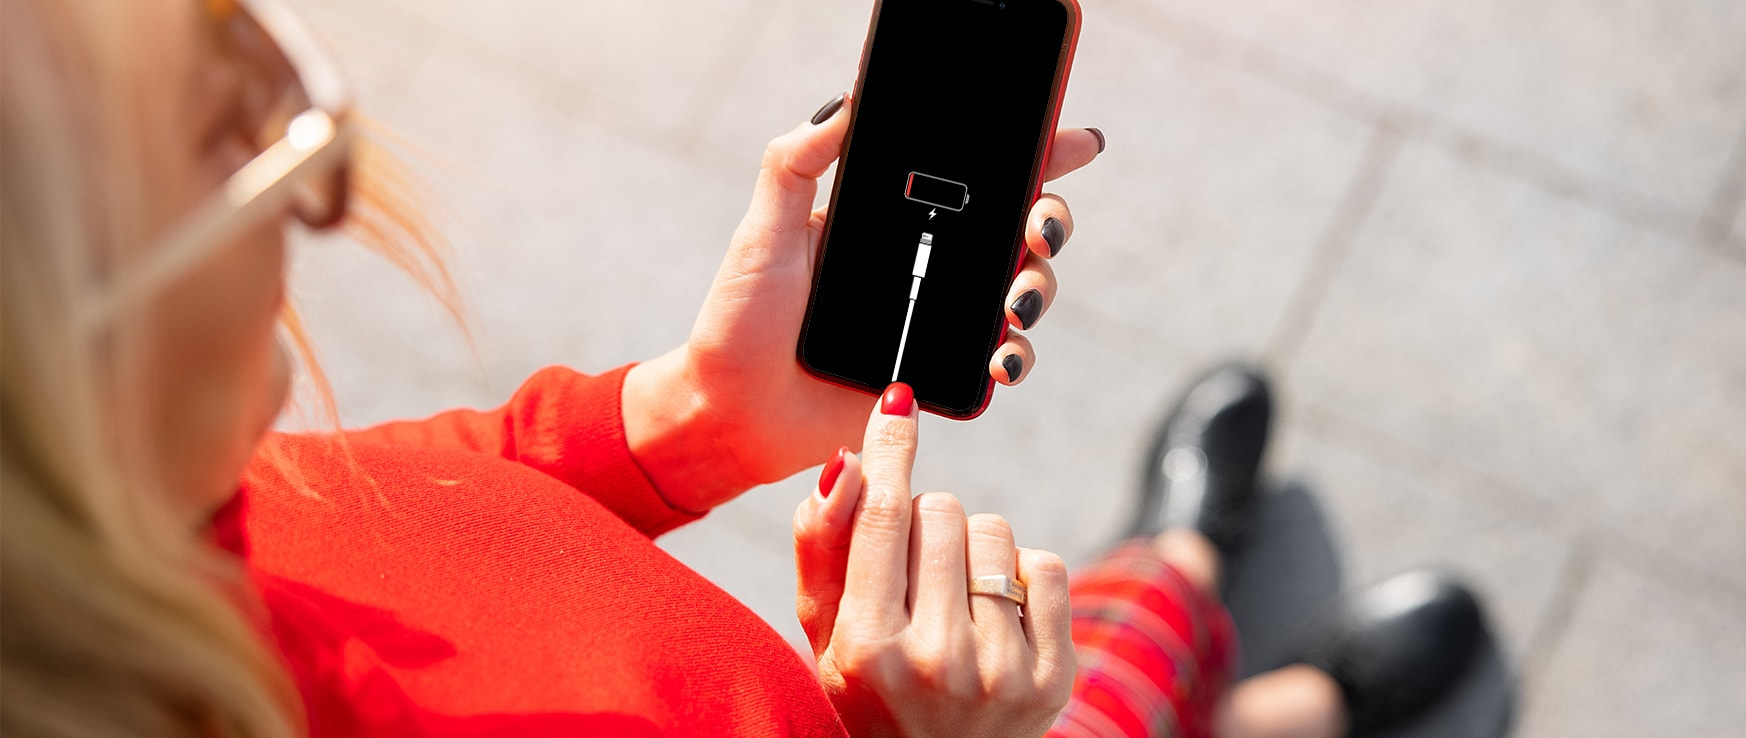 5 Tricks to Try When Your iPhone Won't Charge